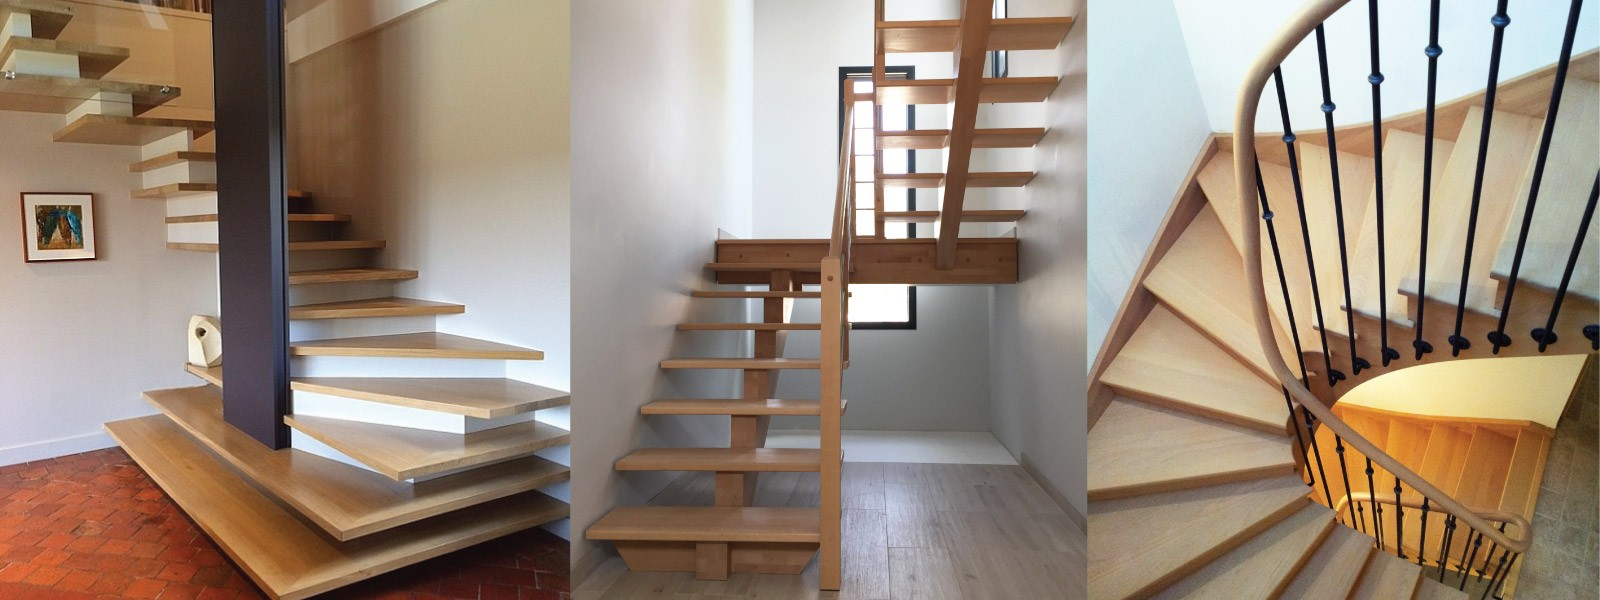 Custom made staircases. Contemporary stairs, luxury and traditional staircases